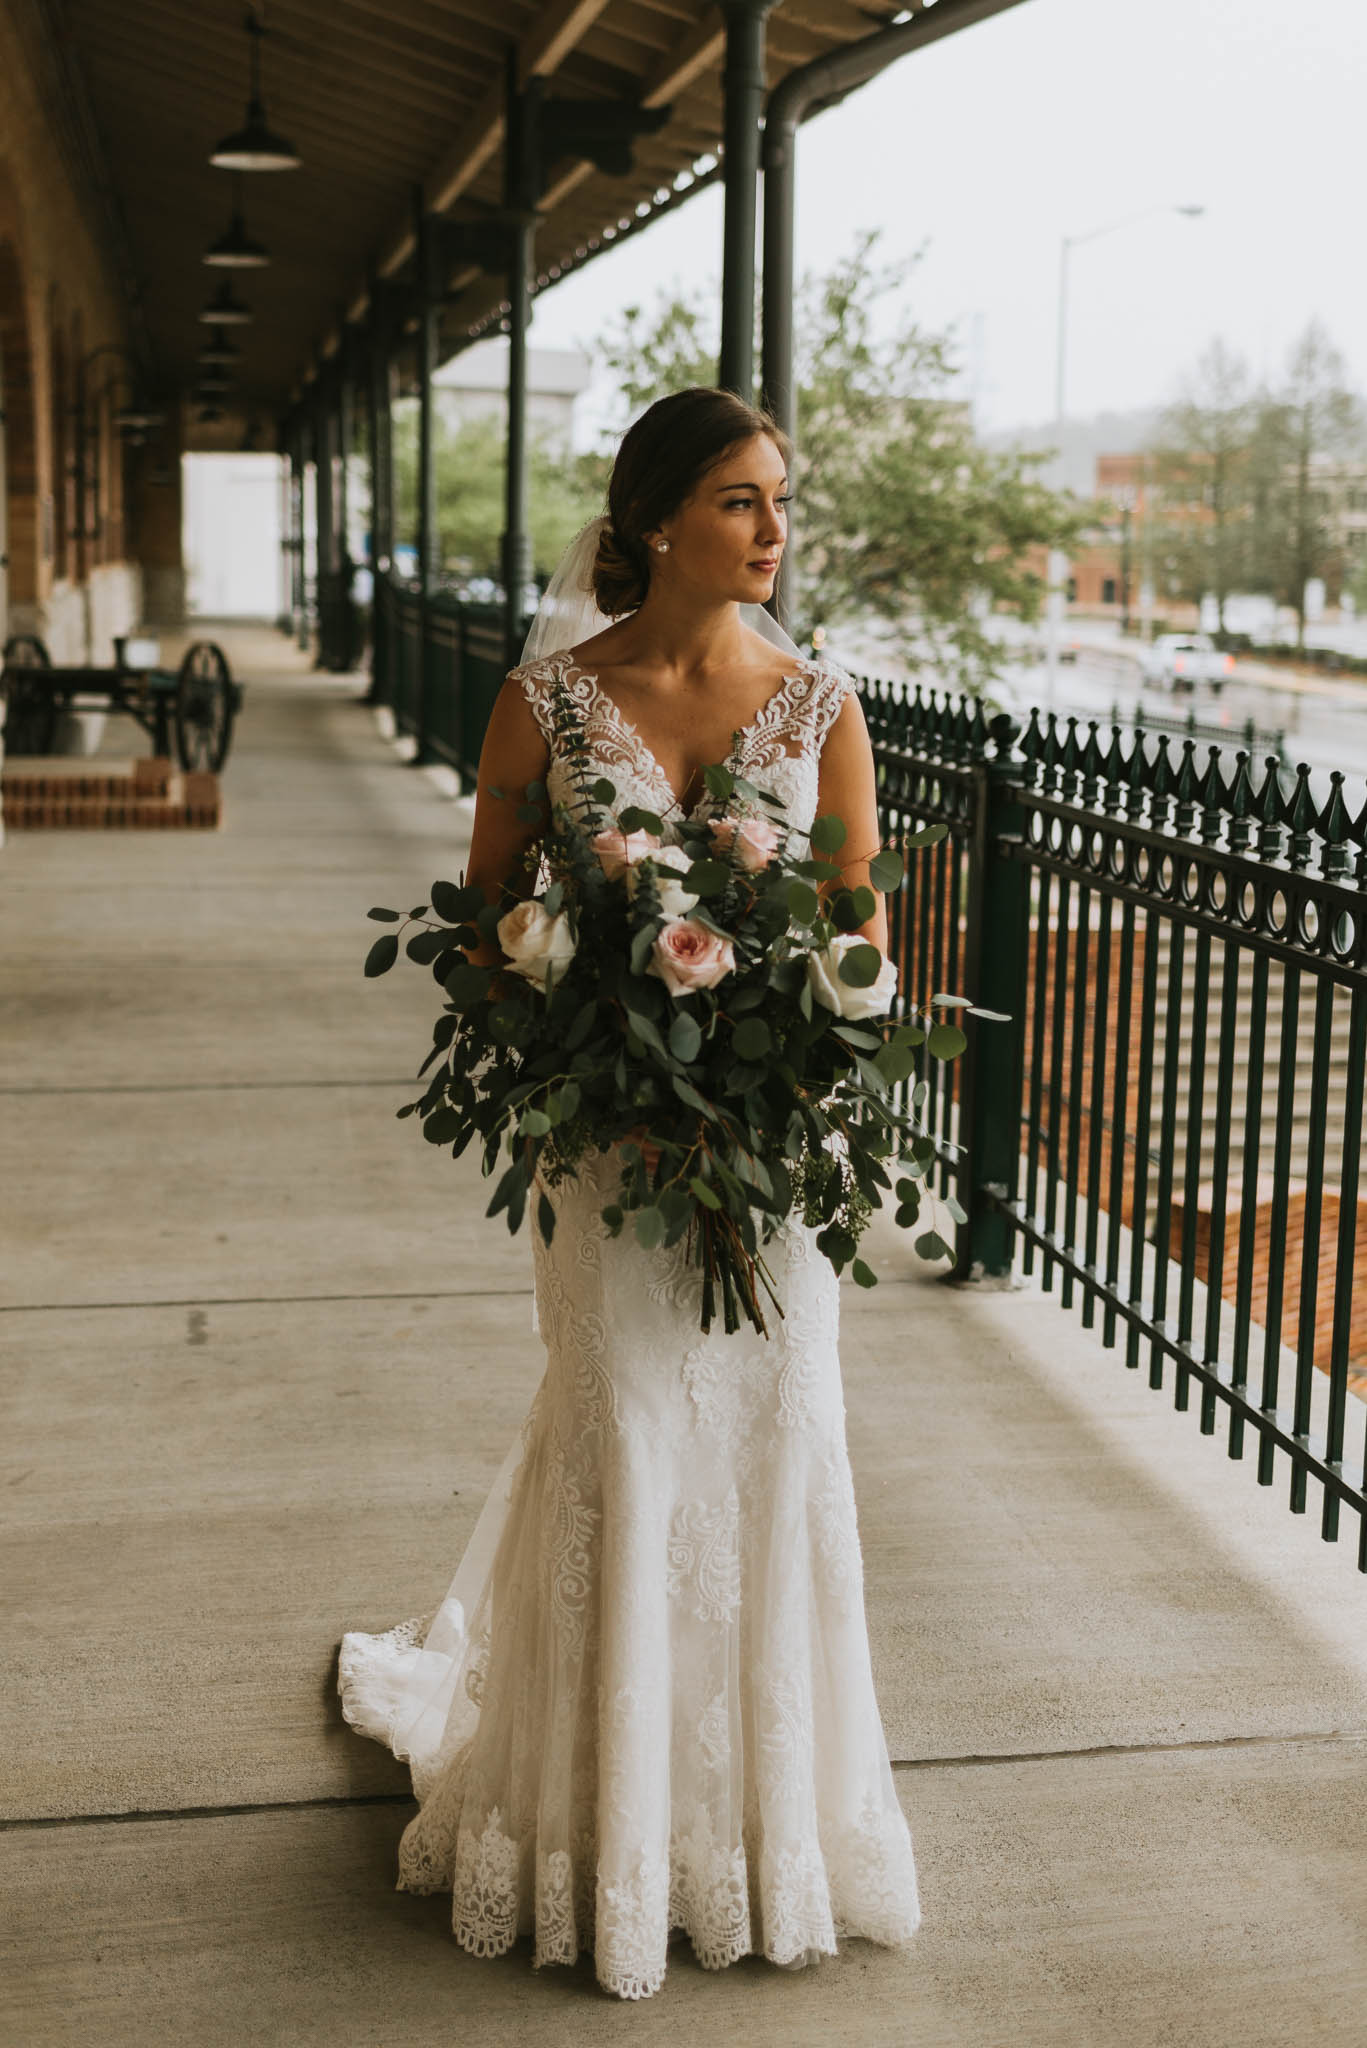 The Bristol Train Station Wedding, Bristol, TN, Northeast Tennessee Wedding Photographer, East Tennessee Wedding Photographer, Knoxville, TN Wedding Photographer